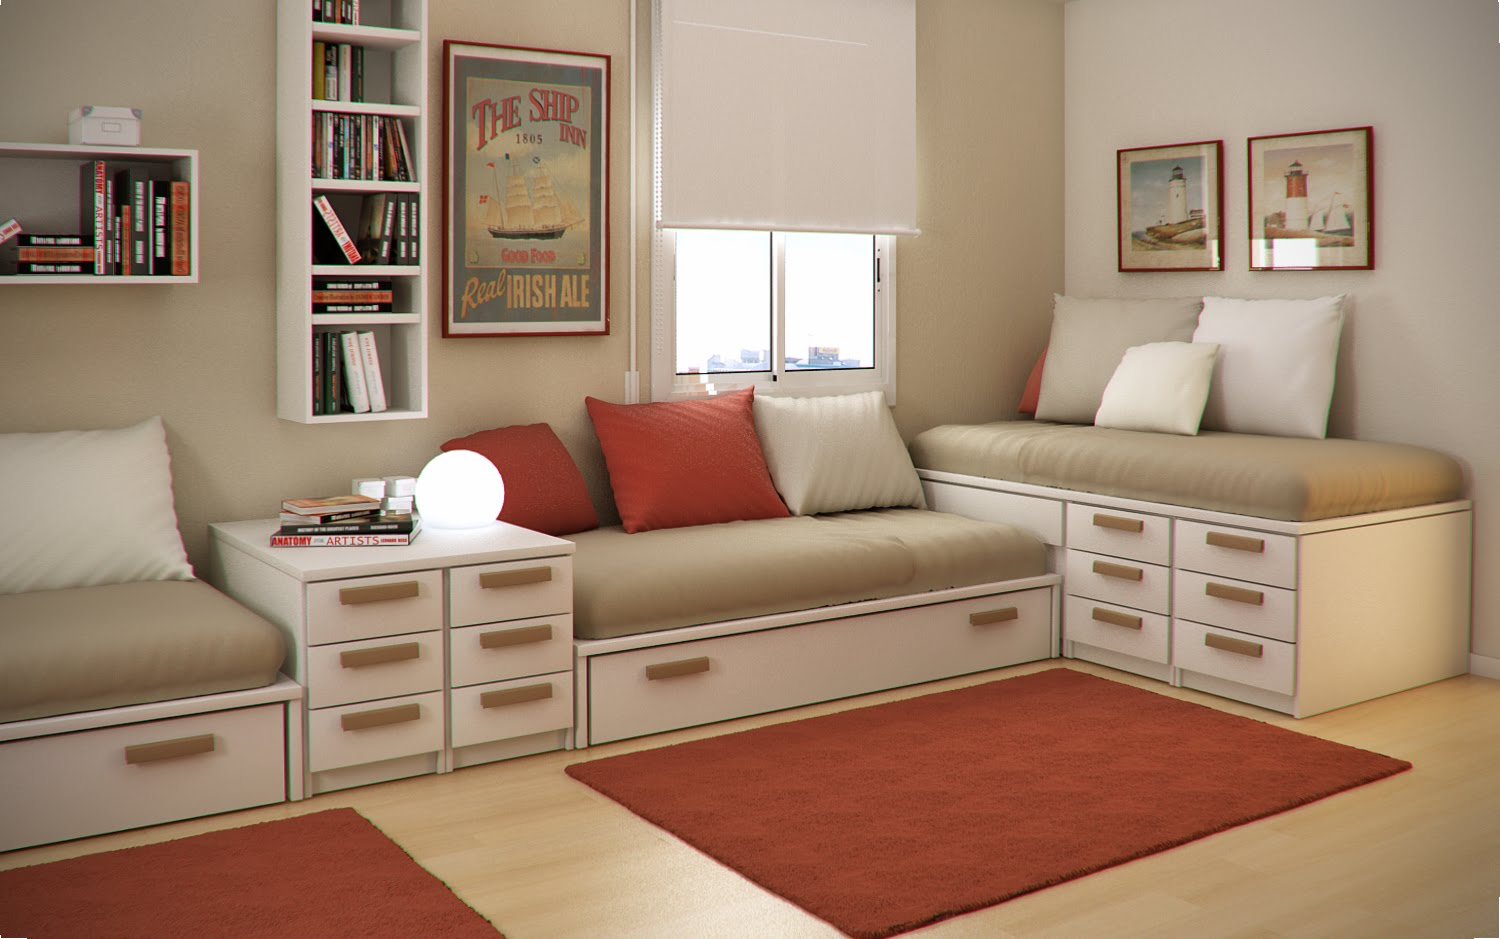 Home Interior Kids Design Ideas Small Floorspace Kids Rooms Red Brown Interior